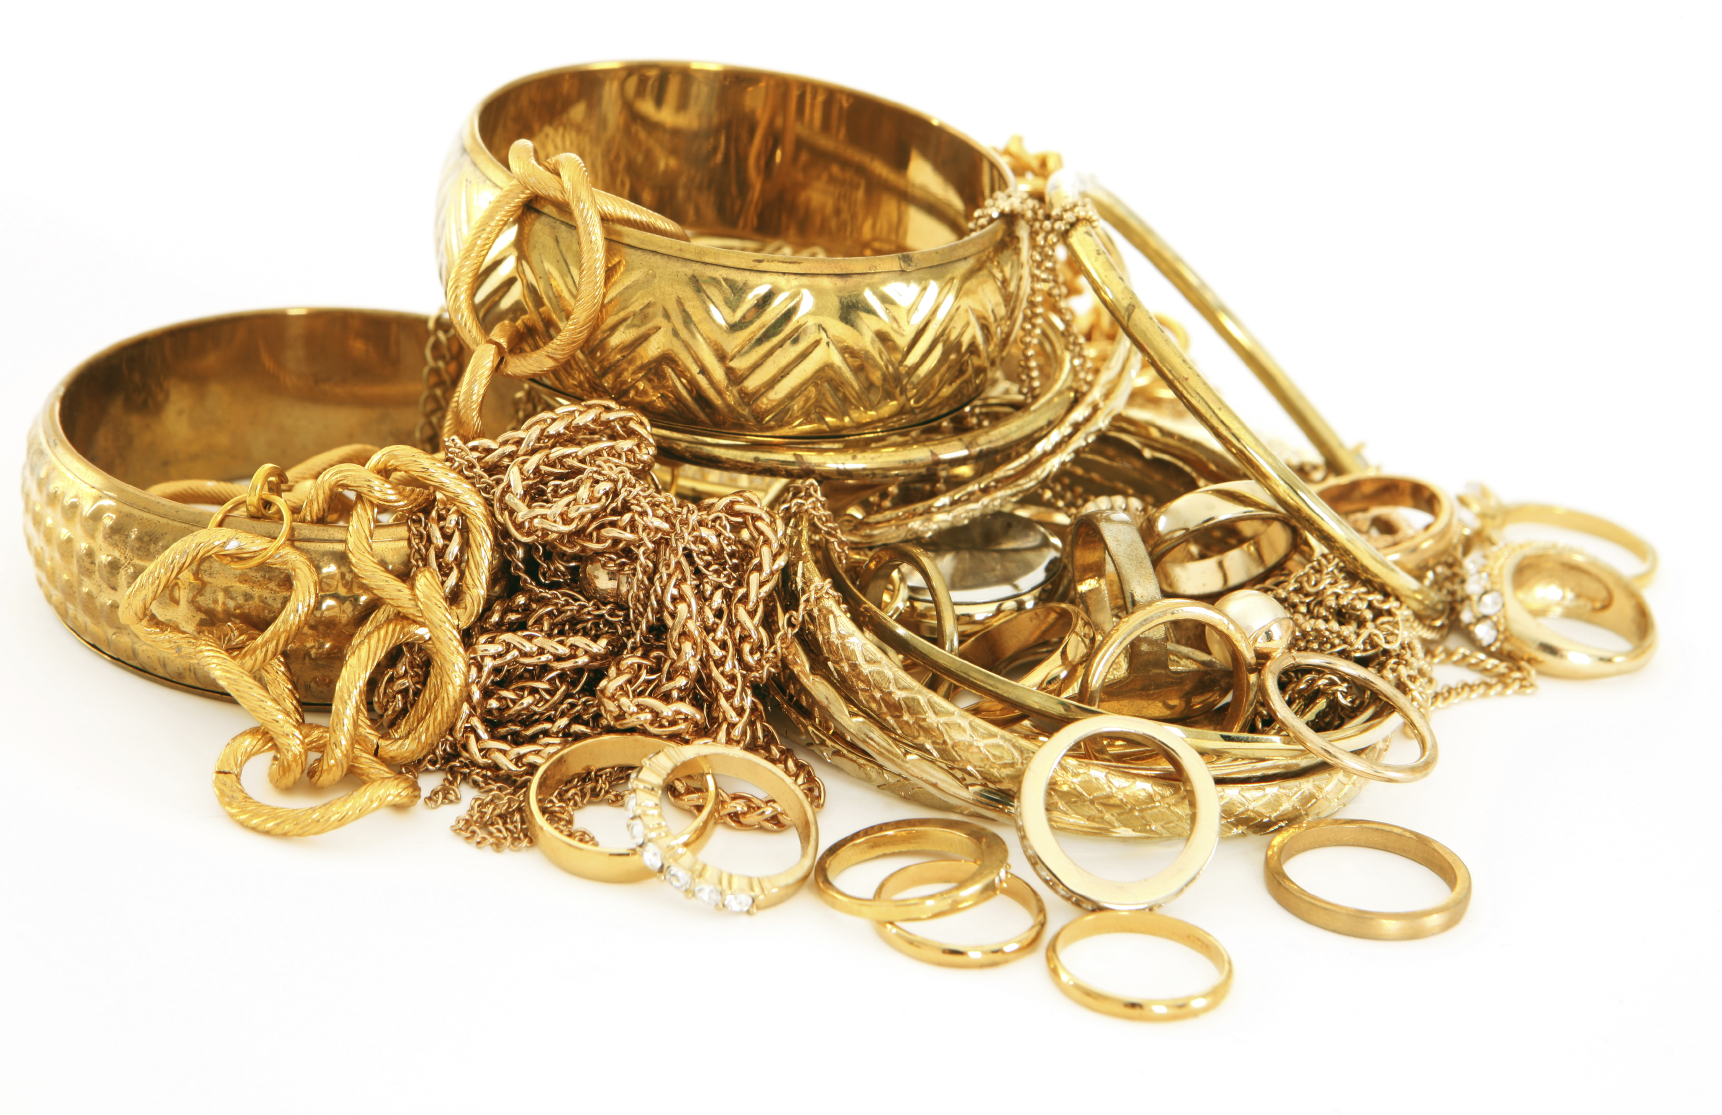 Gold-Filled vs. Gold-Plated: What\'s the Difference? | Beads and Pieces